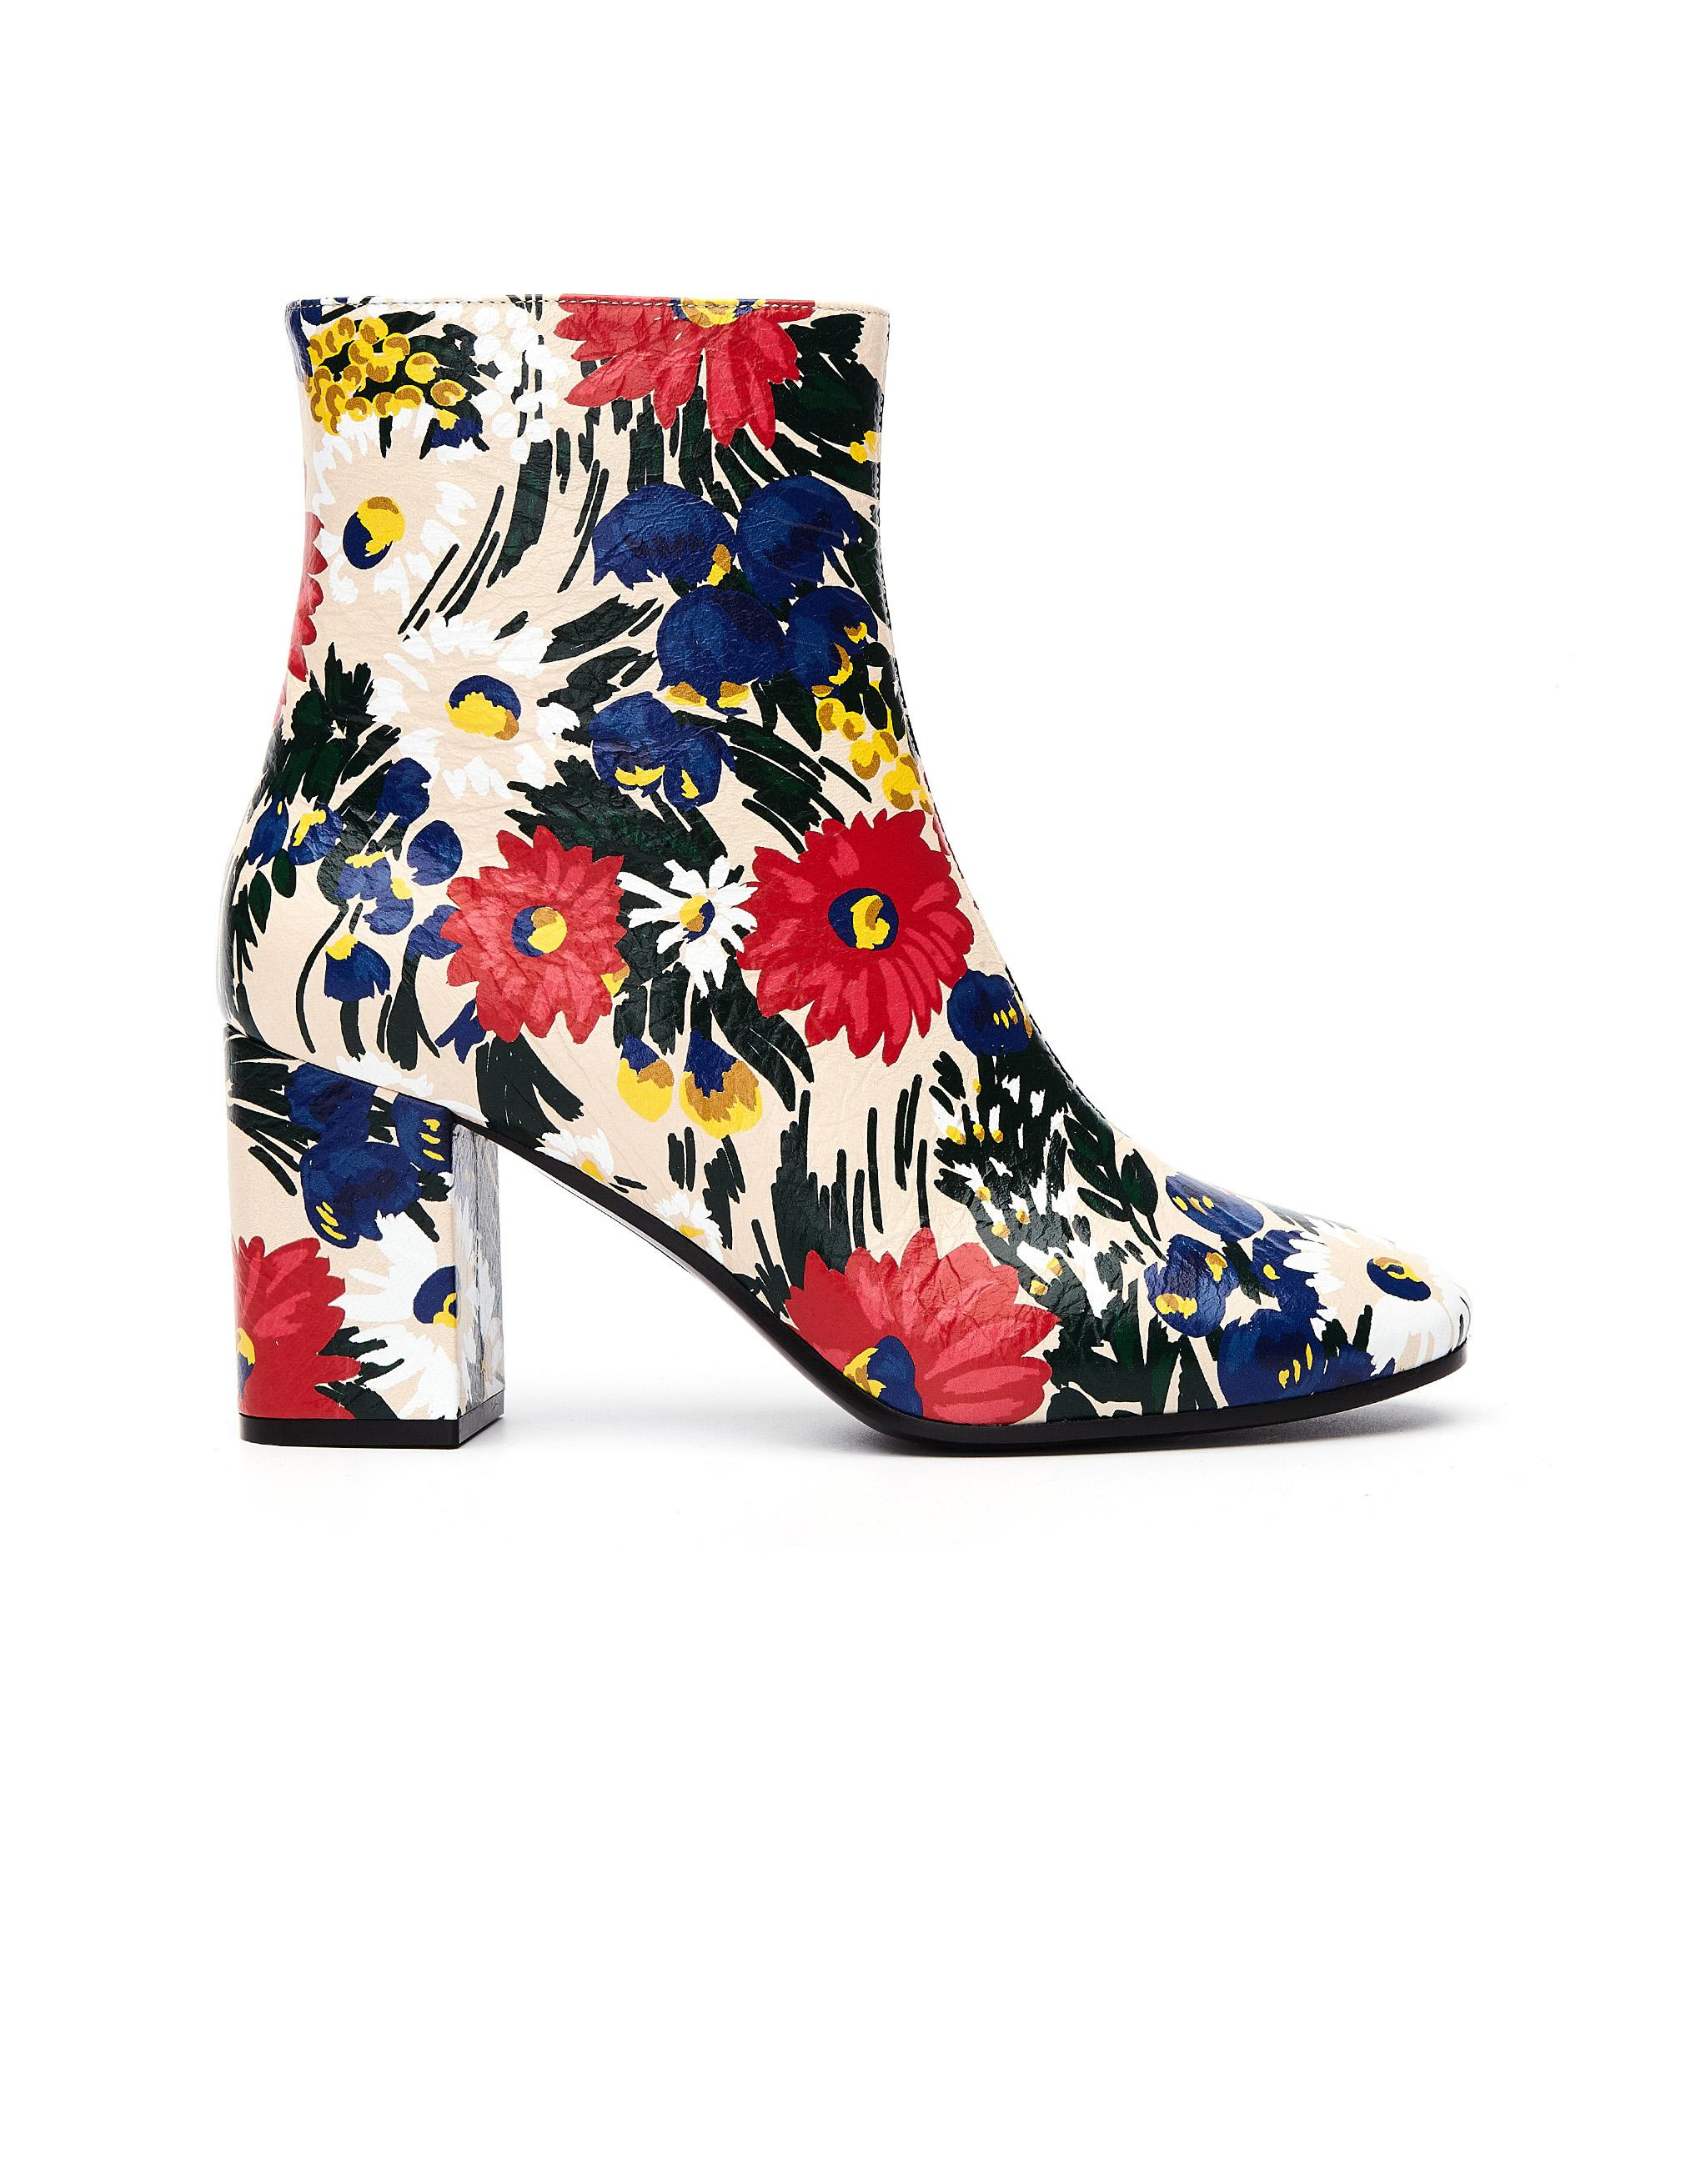 2ac125bc2567 Balenciaga Flower Printed Leather Ville Boots in Blue - Save ...